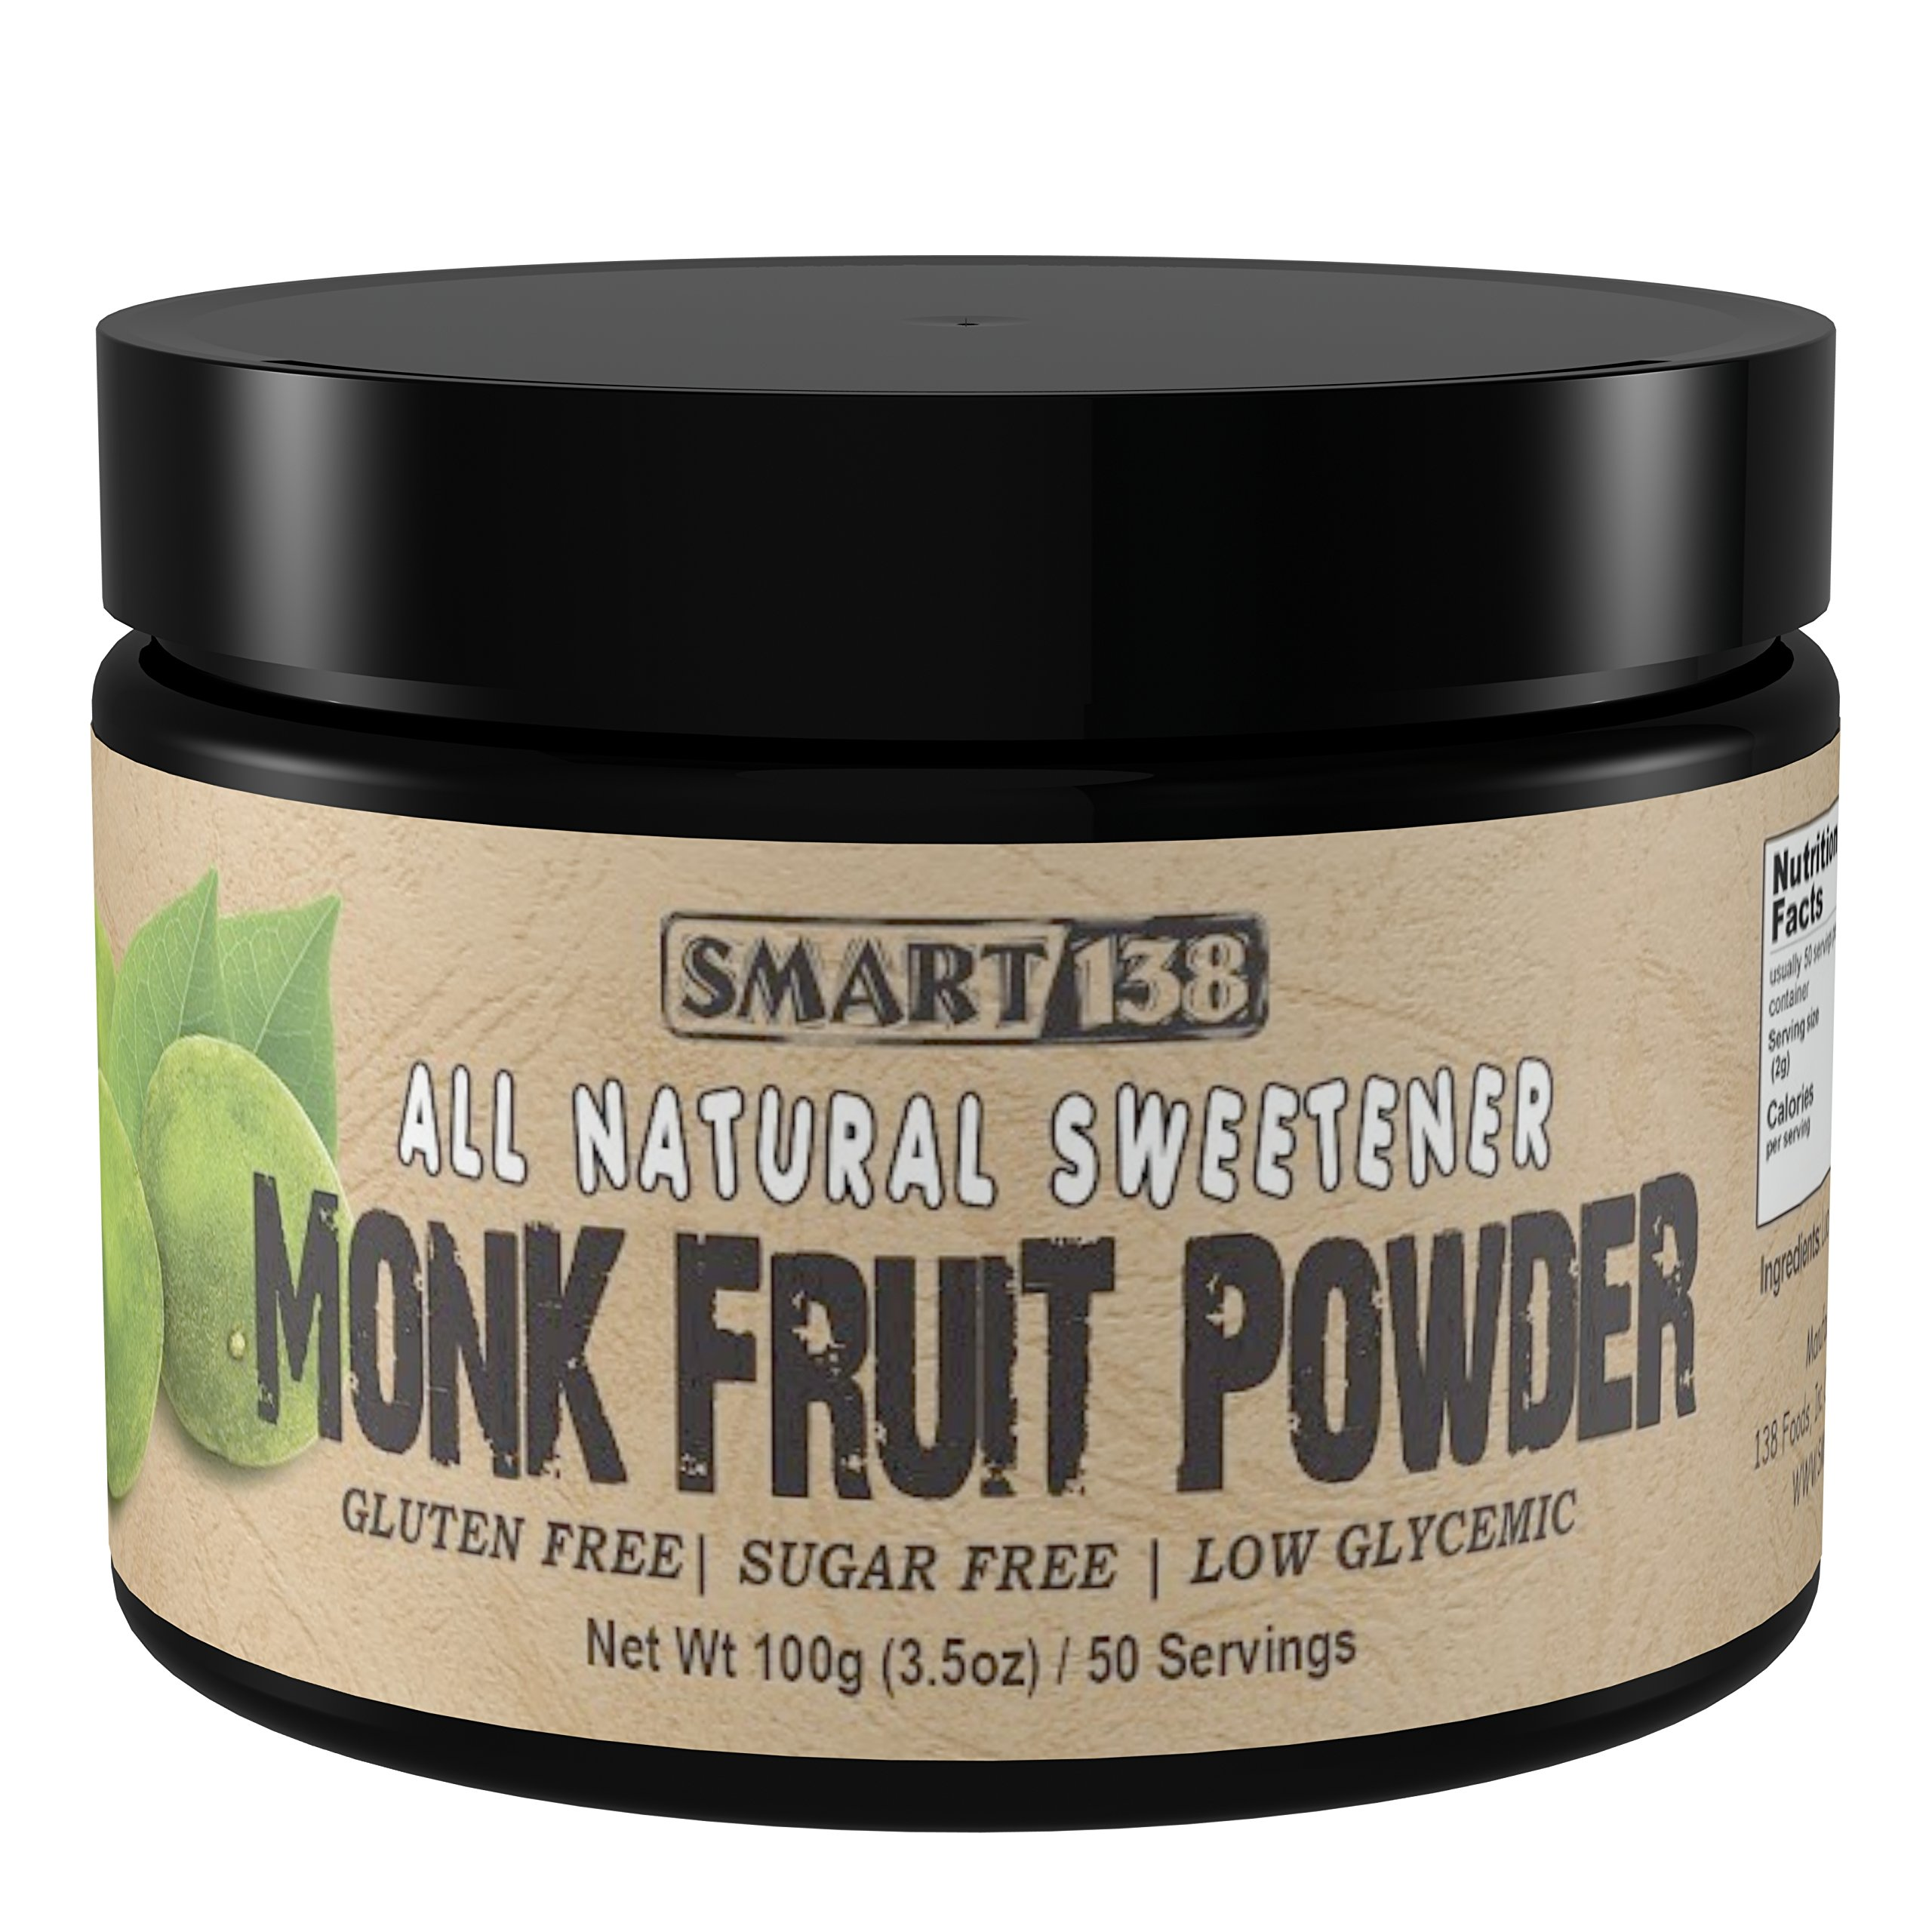 Monk Fruit Blend - Only 2 Ingredients - Gluten Free, Sugar Free, Low Glycemic, Sweeten Coffee or Tea, Use in Baking